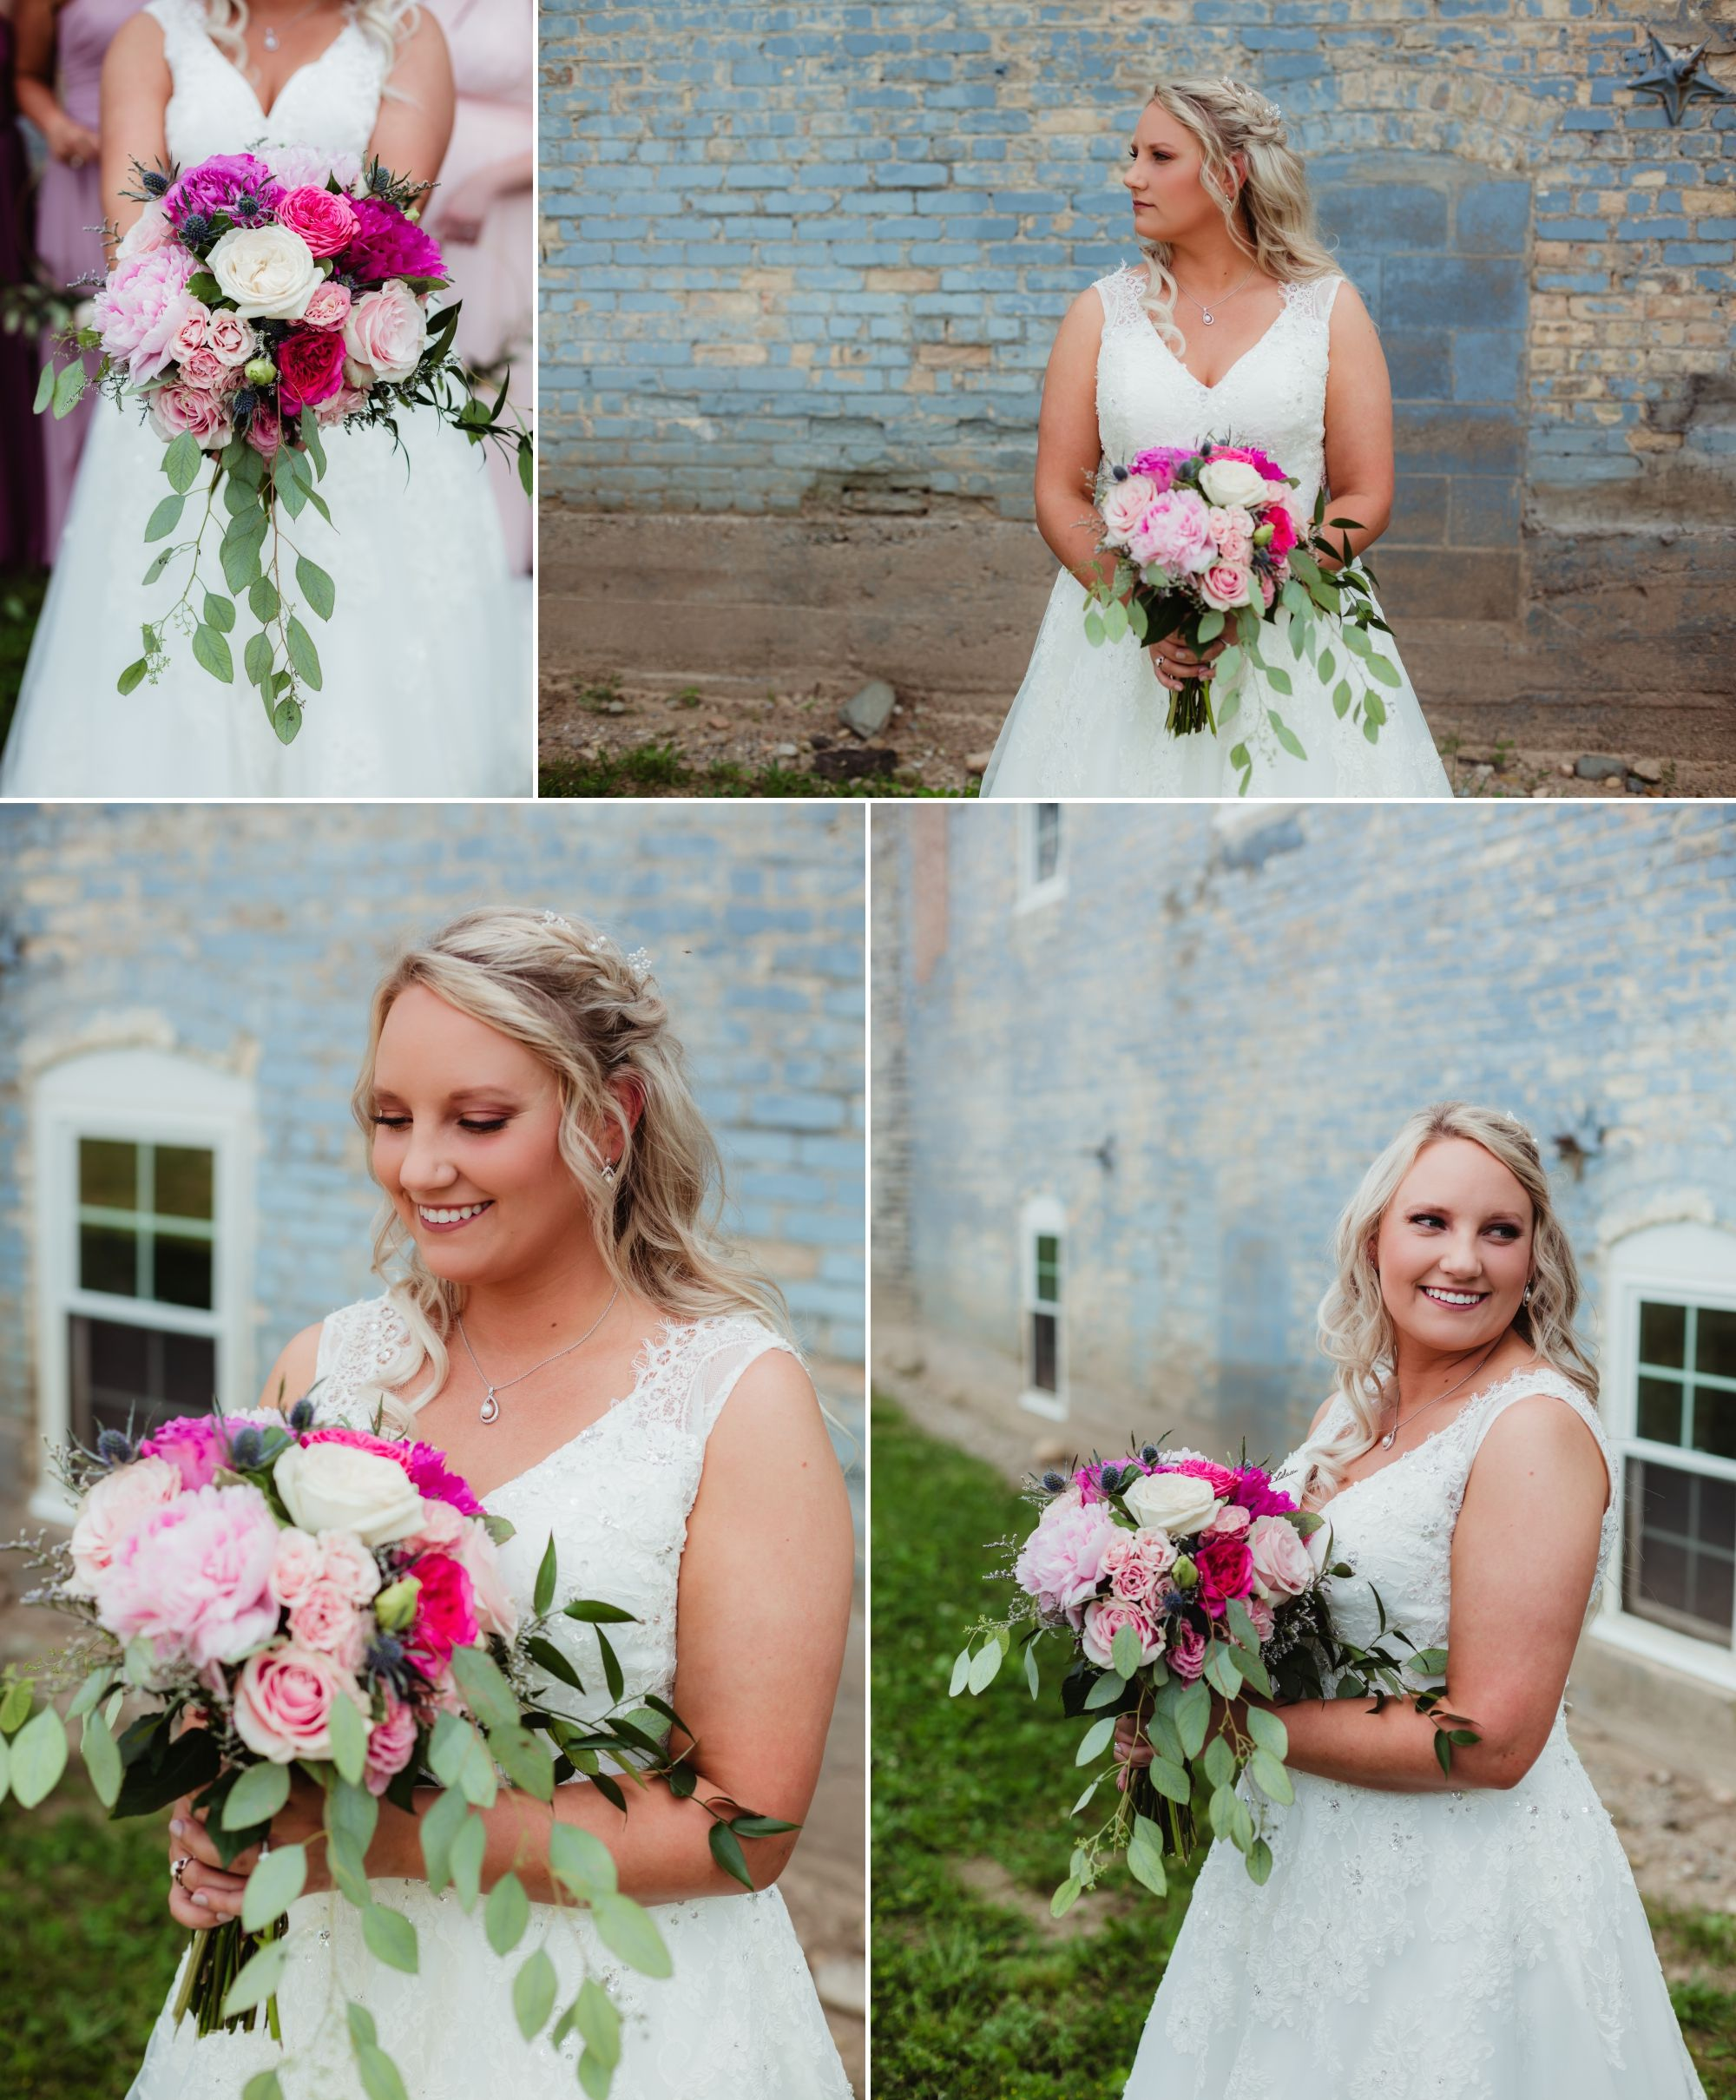 Collage of bride standing outside in front of a blue brick building. Her bouquet is bright pinks.